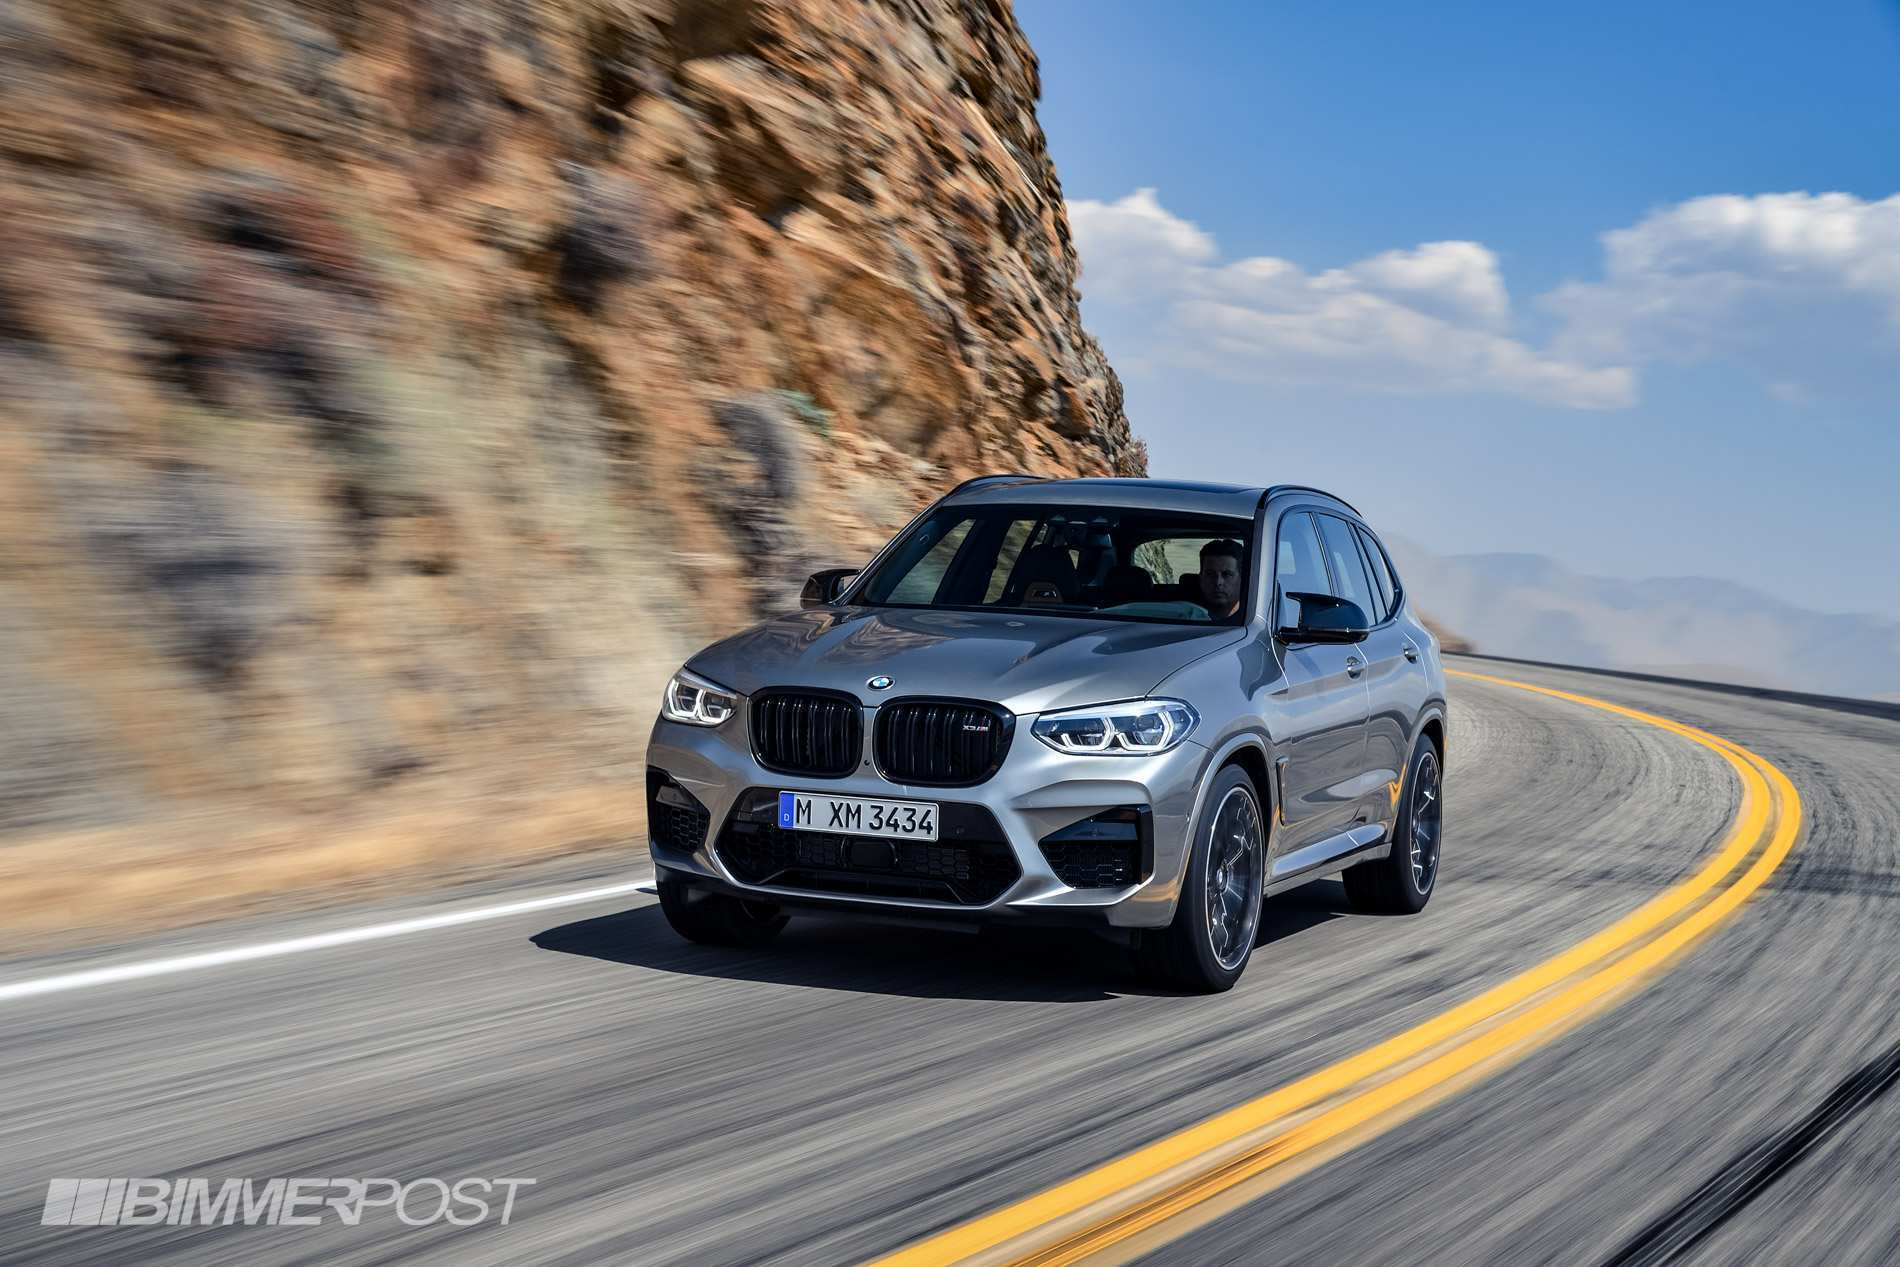 94 Best Review 2020 BMW X3M Ordering Guide Research New with 2020 BMW X3M Ordering Guide